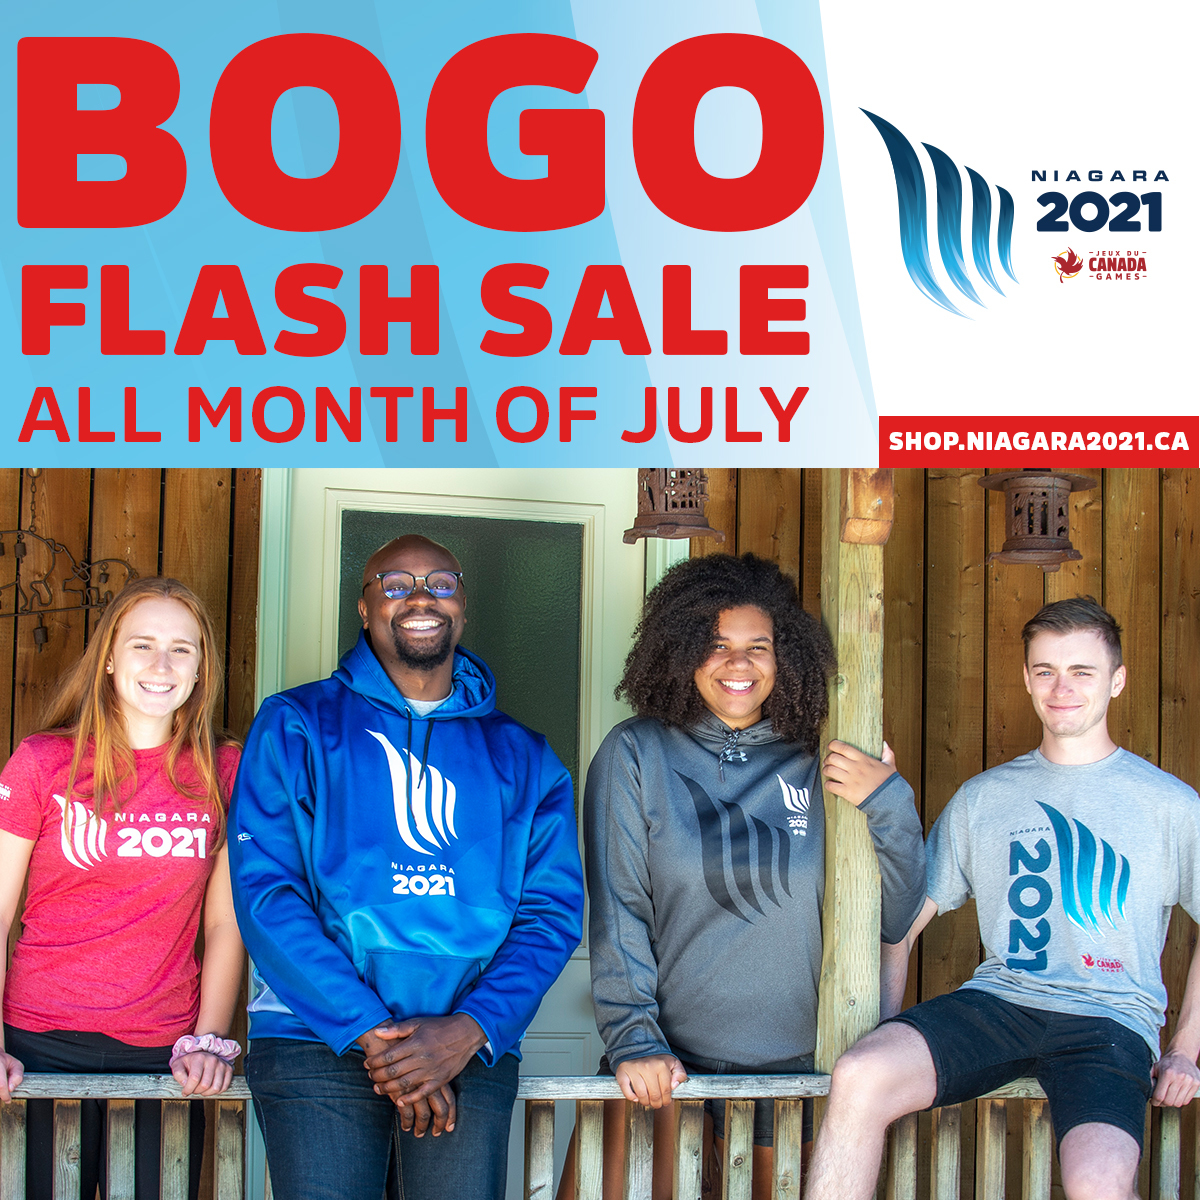 """A diverse group of athletes model Niagara 2021 t-shirts and hoodies. """"BOGO Flash Sale all month of July"""""""